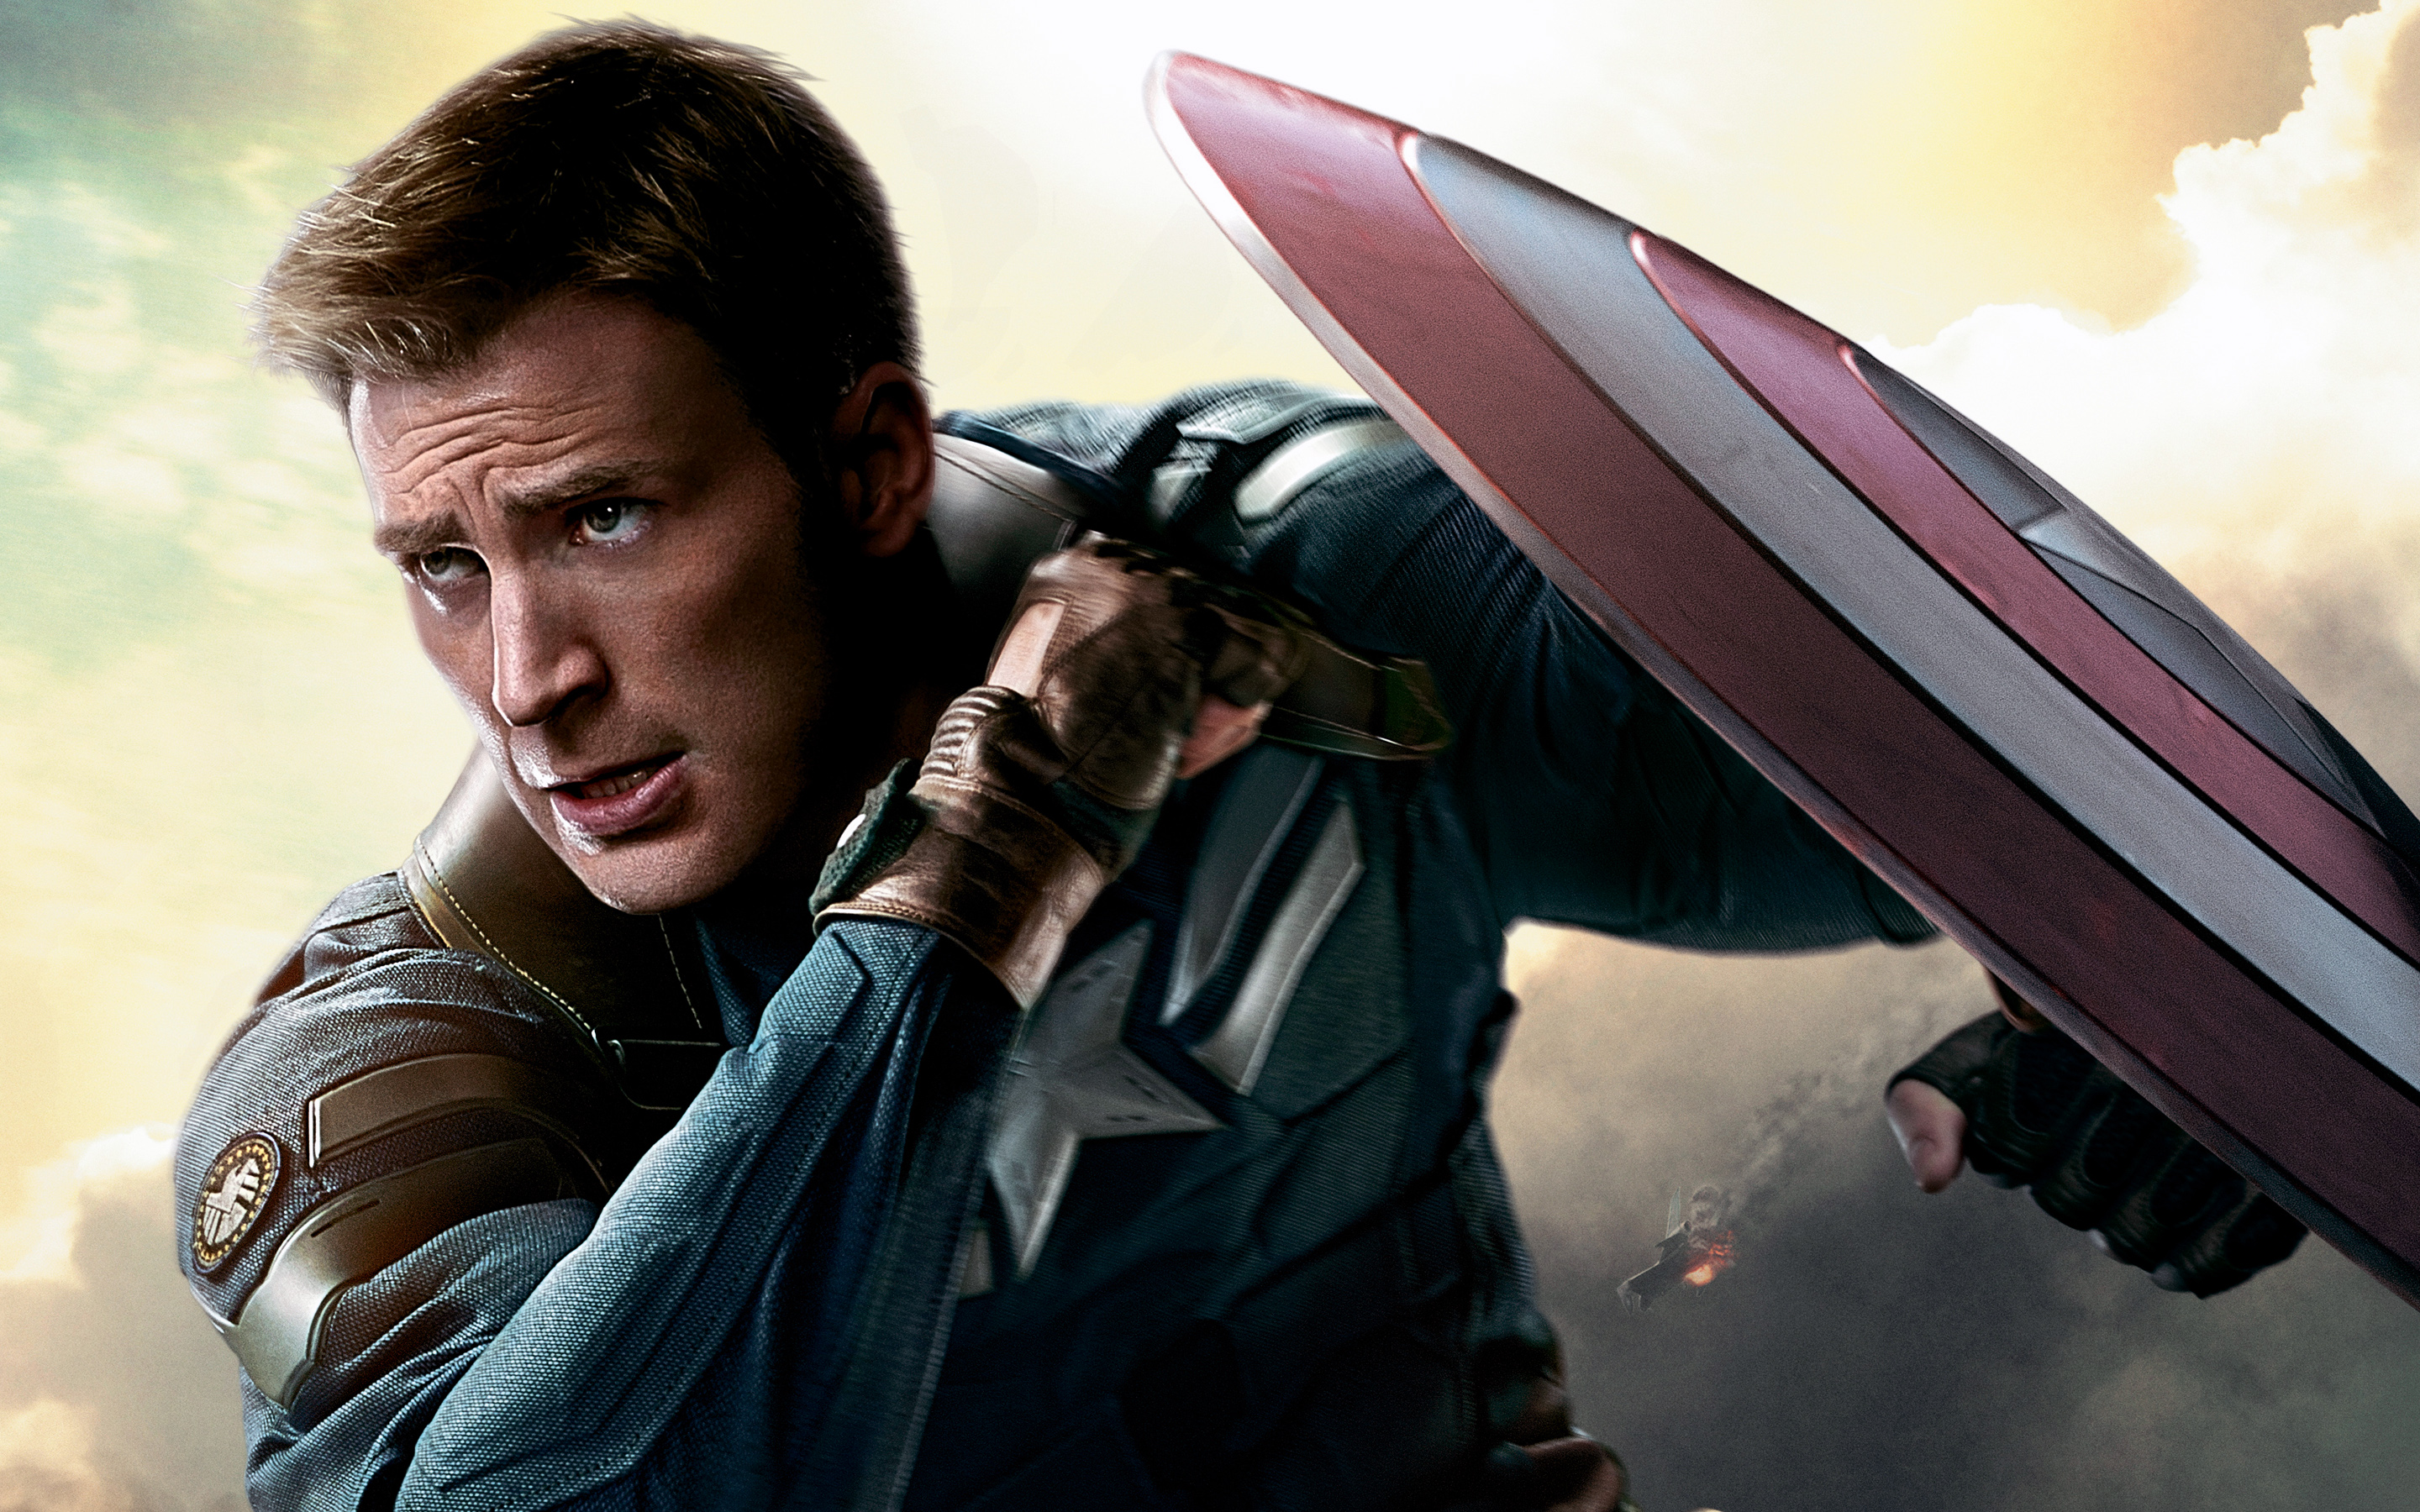 Captain America The Winter Soldier Hd Wallpaper Background Image 2880x1800 Id 618342 Wallpaper Abyss